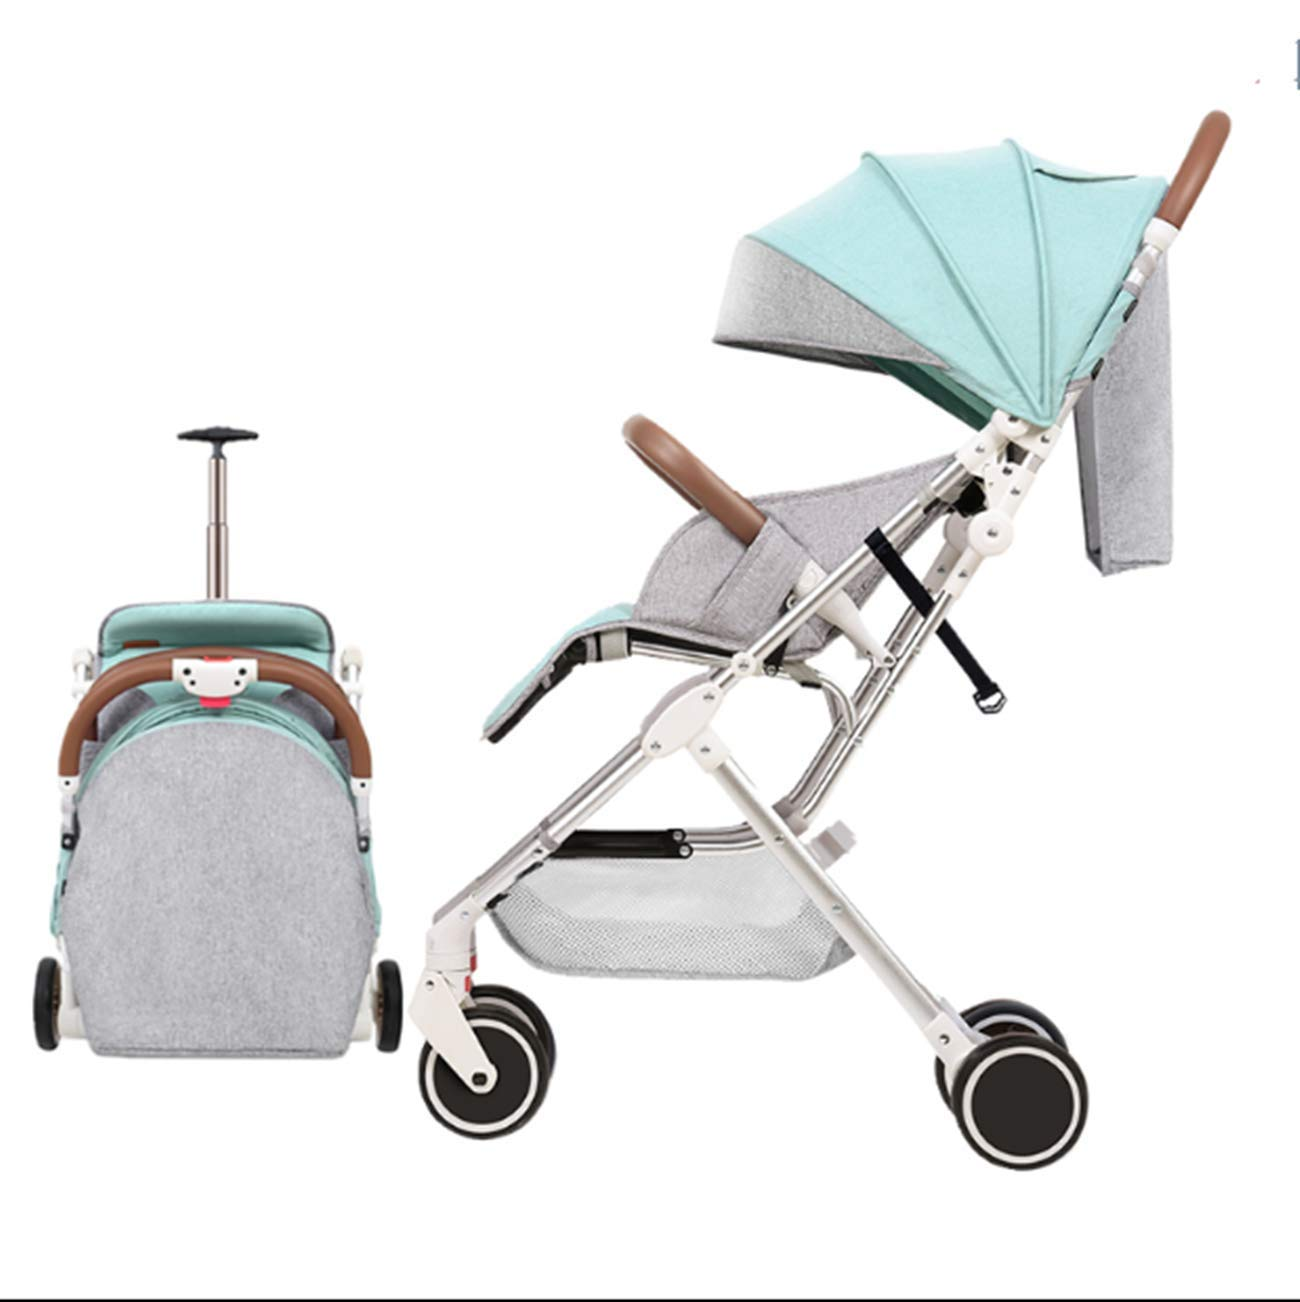 HGYG Baby stroller Ultralight portable Can sit and lie down Easy folding Children's Pushchairs Baby trolley Can be on the plane